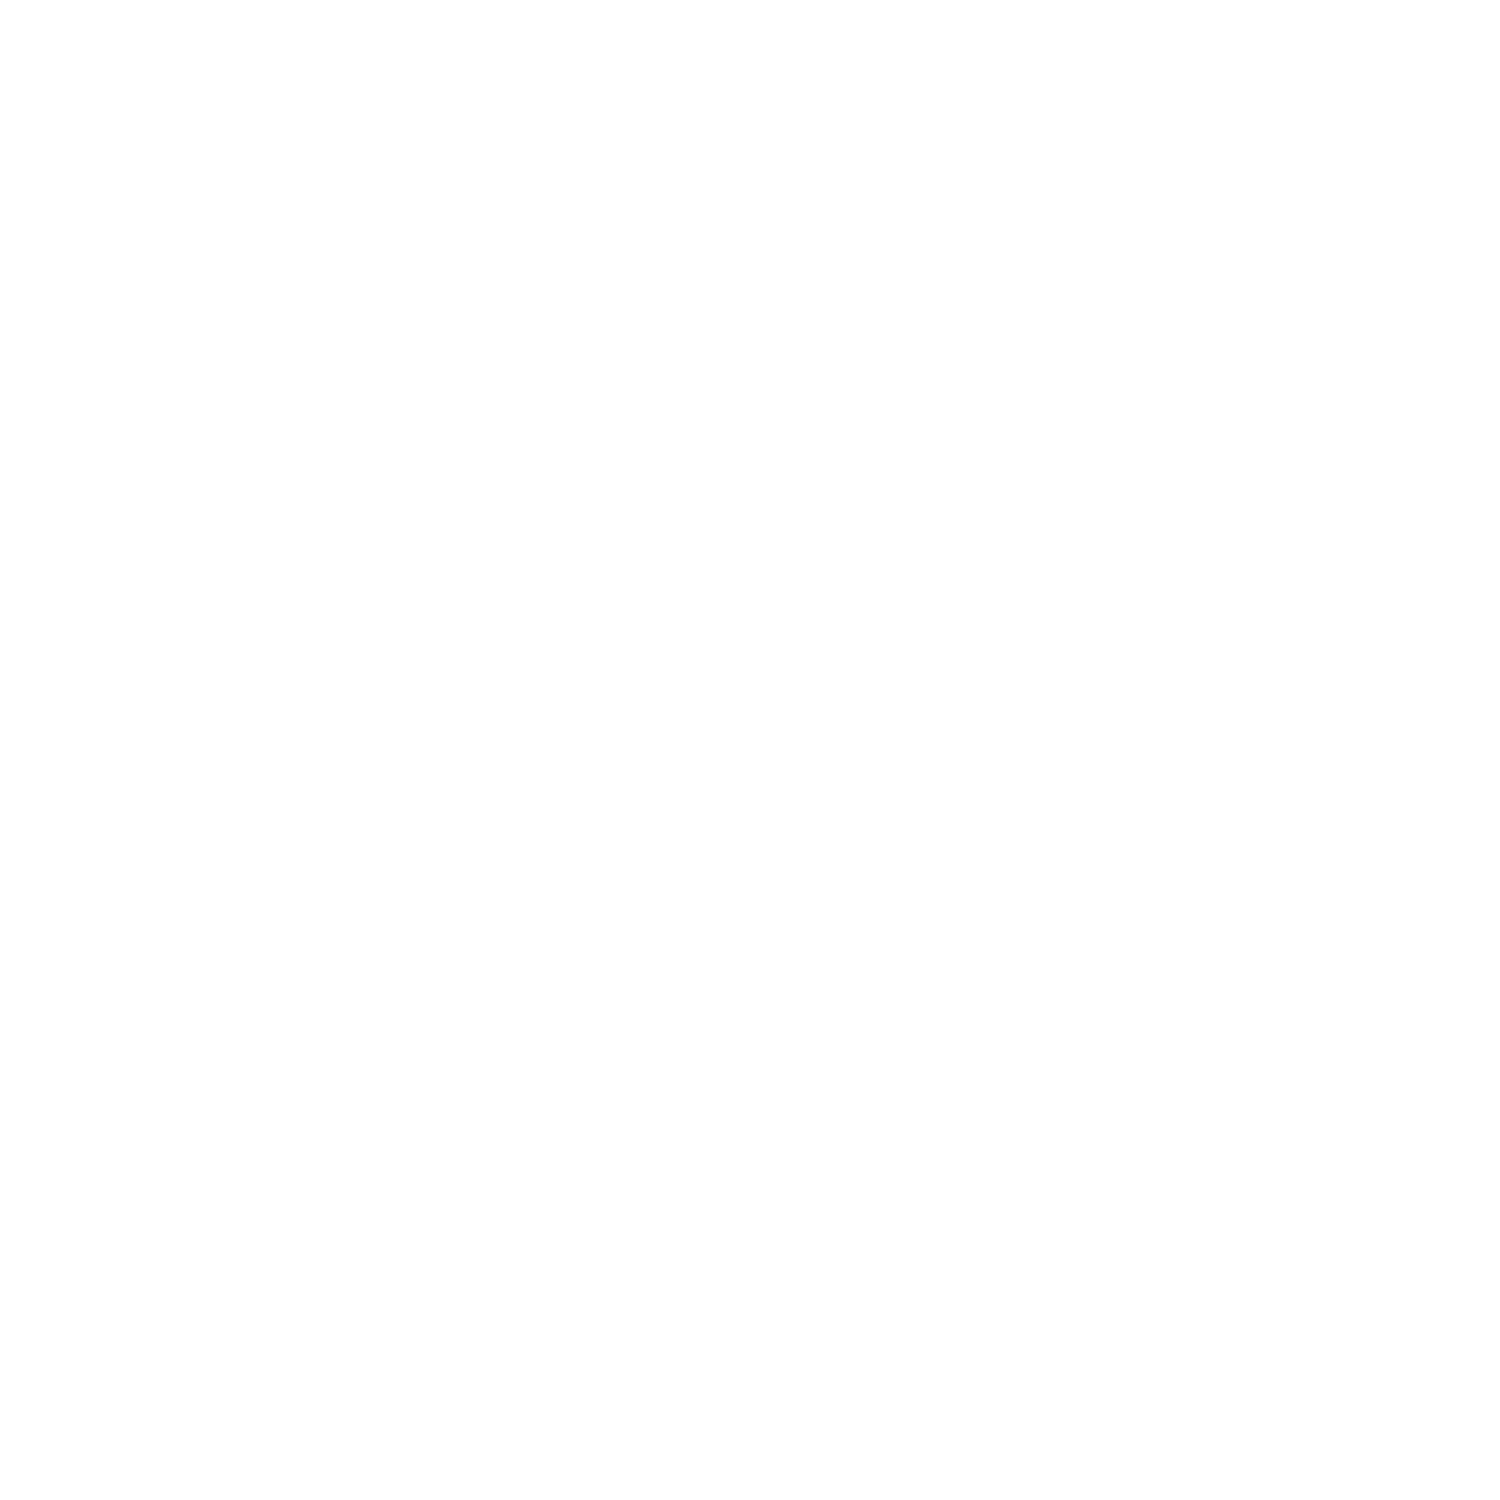 BINAURAL DREAM